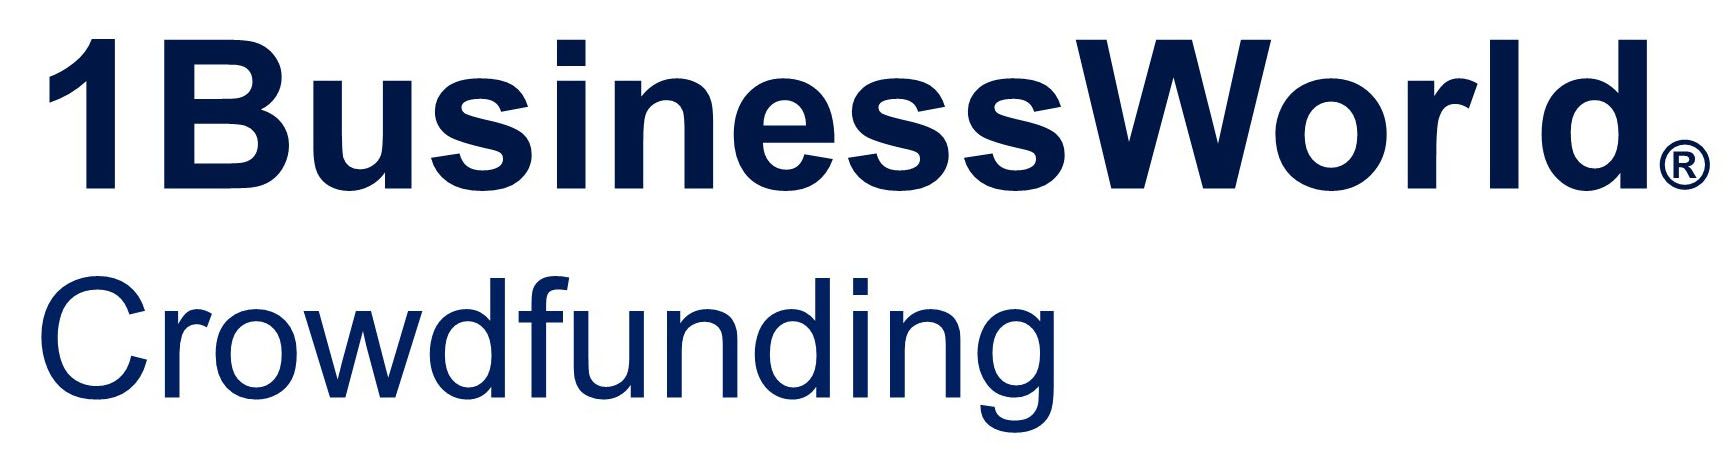 1BusinessWorld Crowdfunding